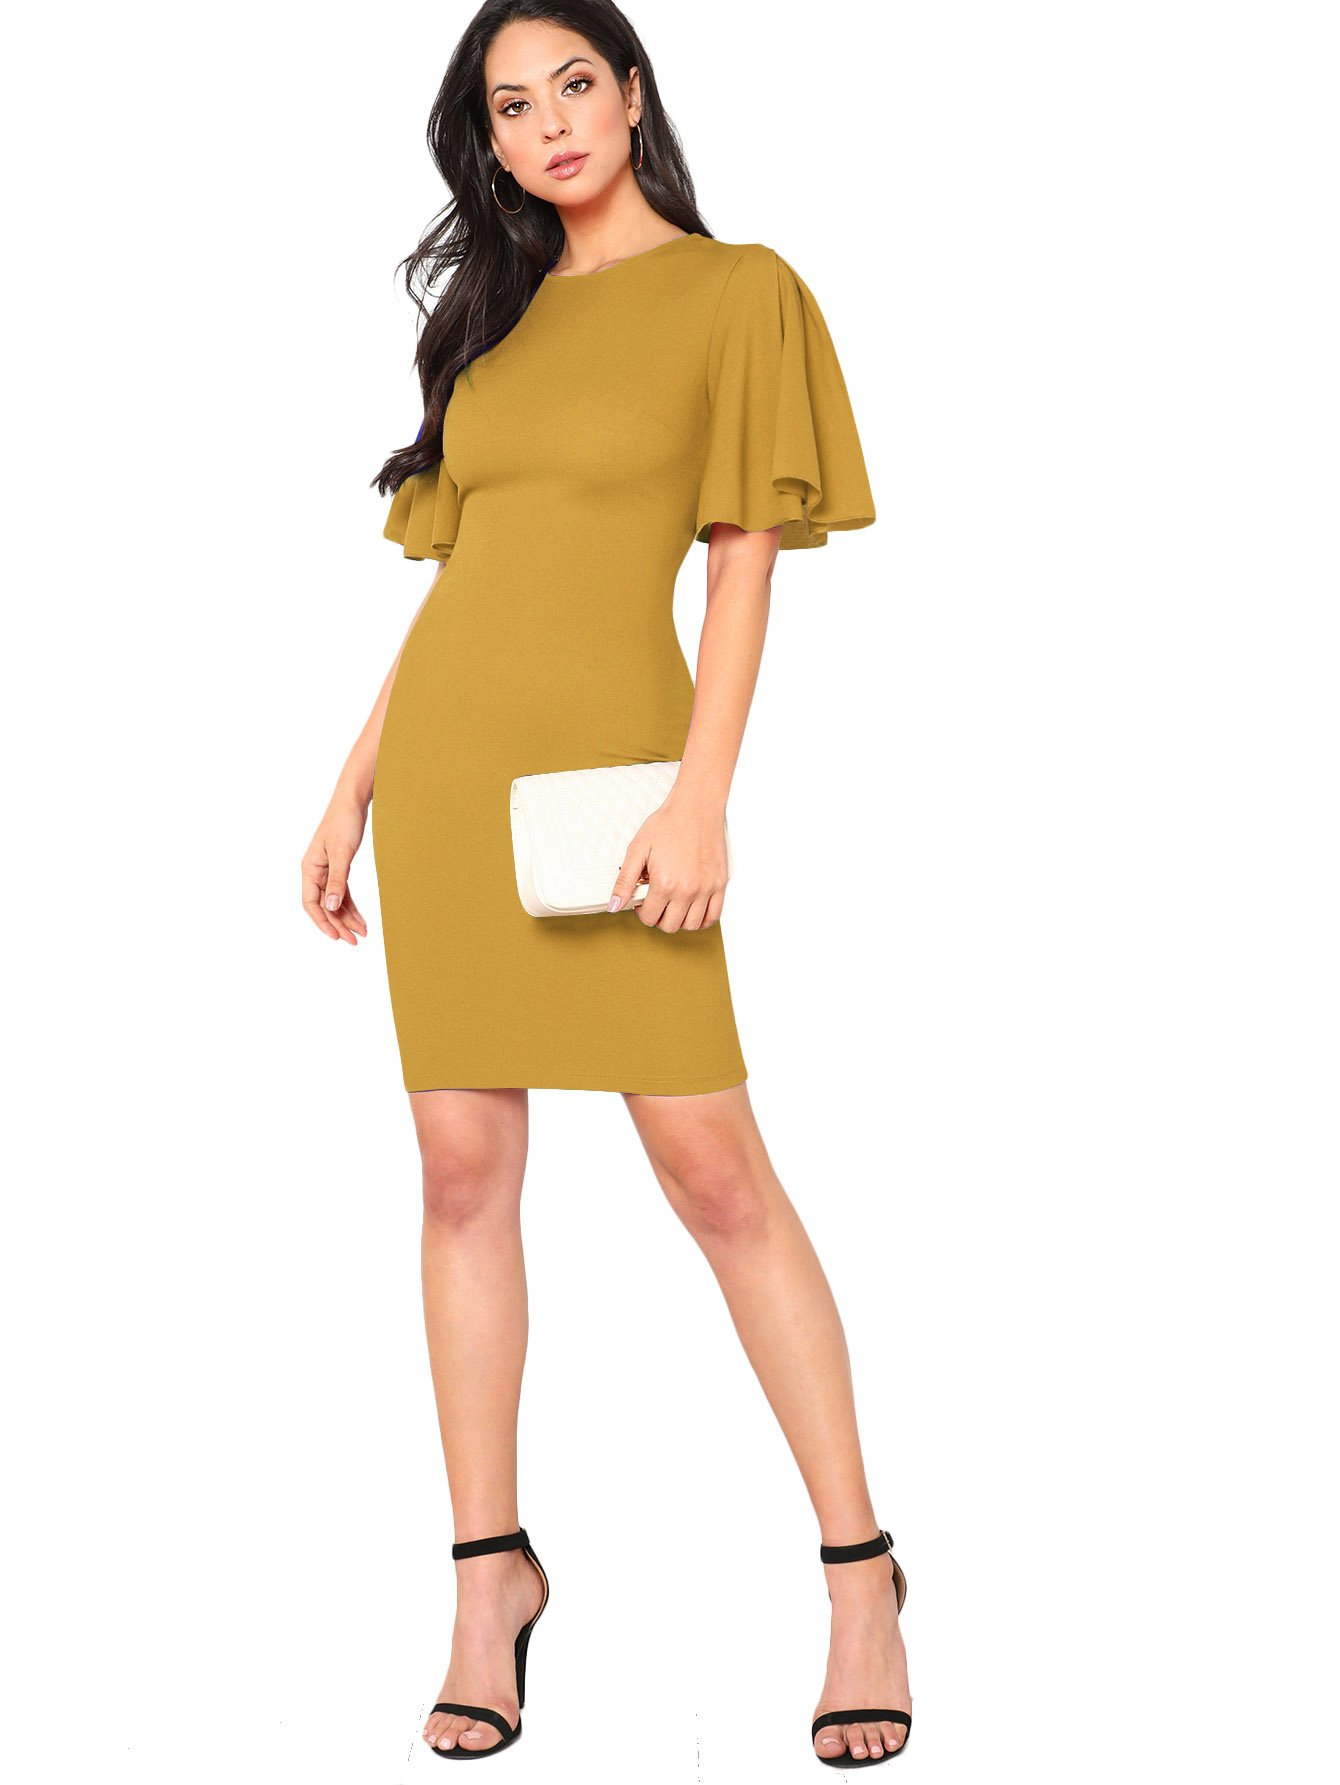 Available at Amazon: Floerns Women's Ruffle Sleeve Knee Length Bodycon Dress